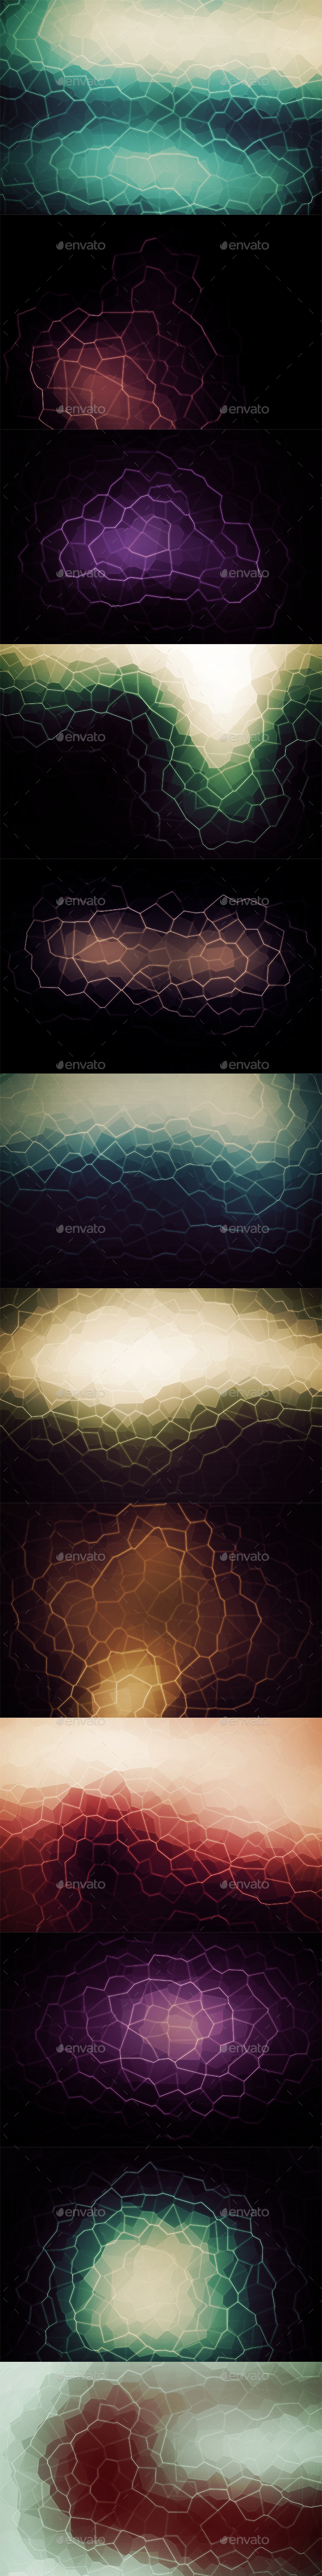 Crystallized Backgrounds Vol18 - Abstract Backgrounds